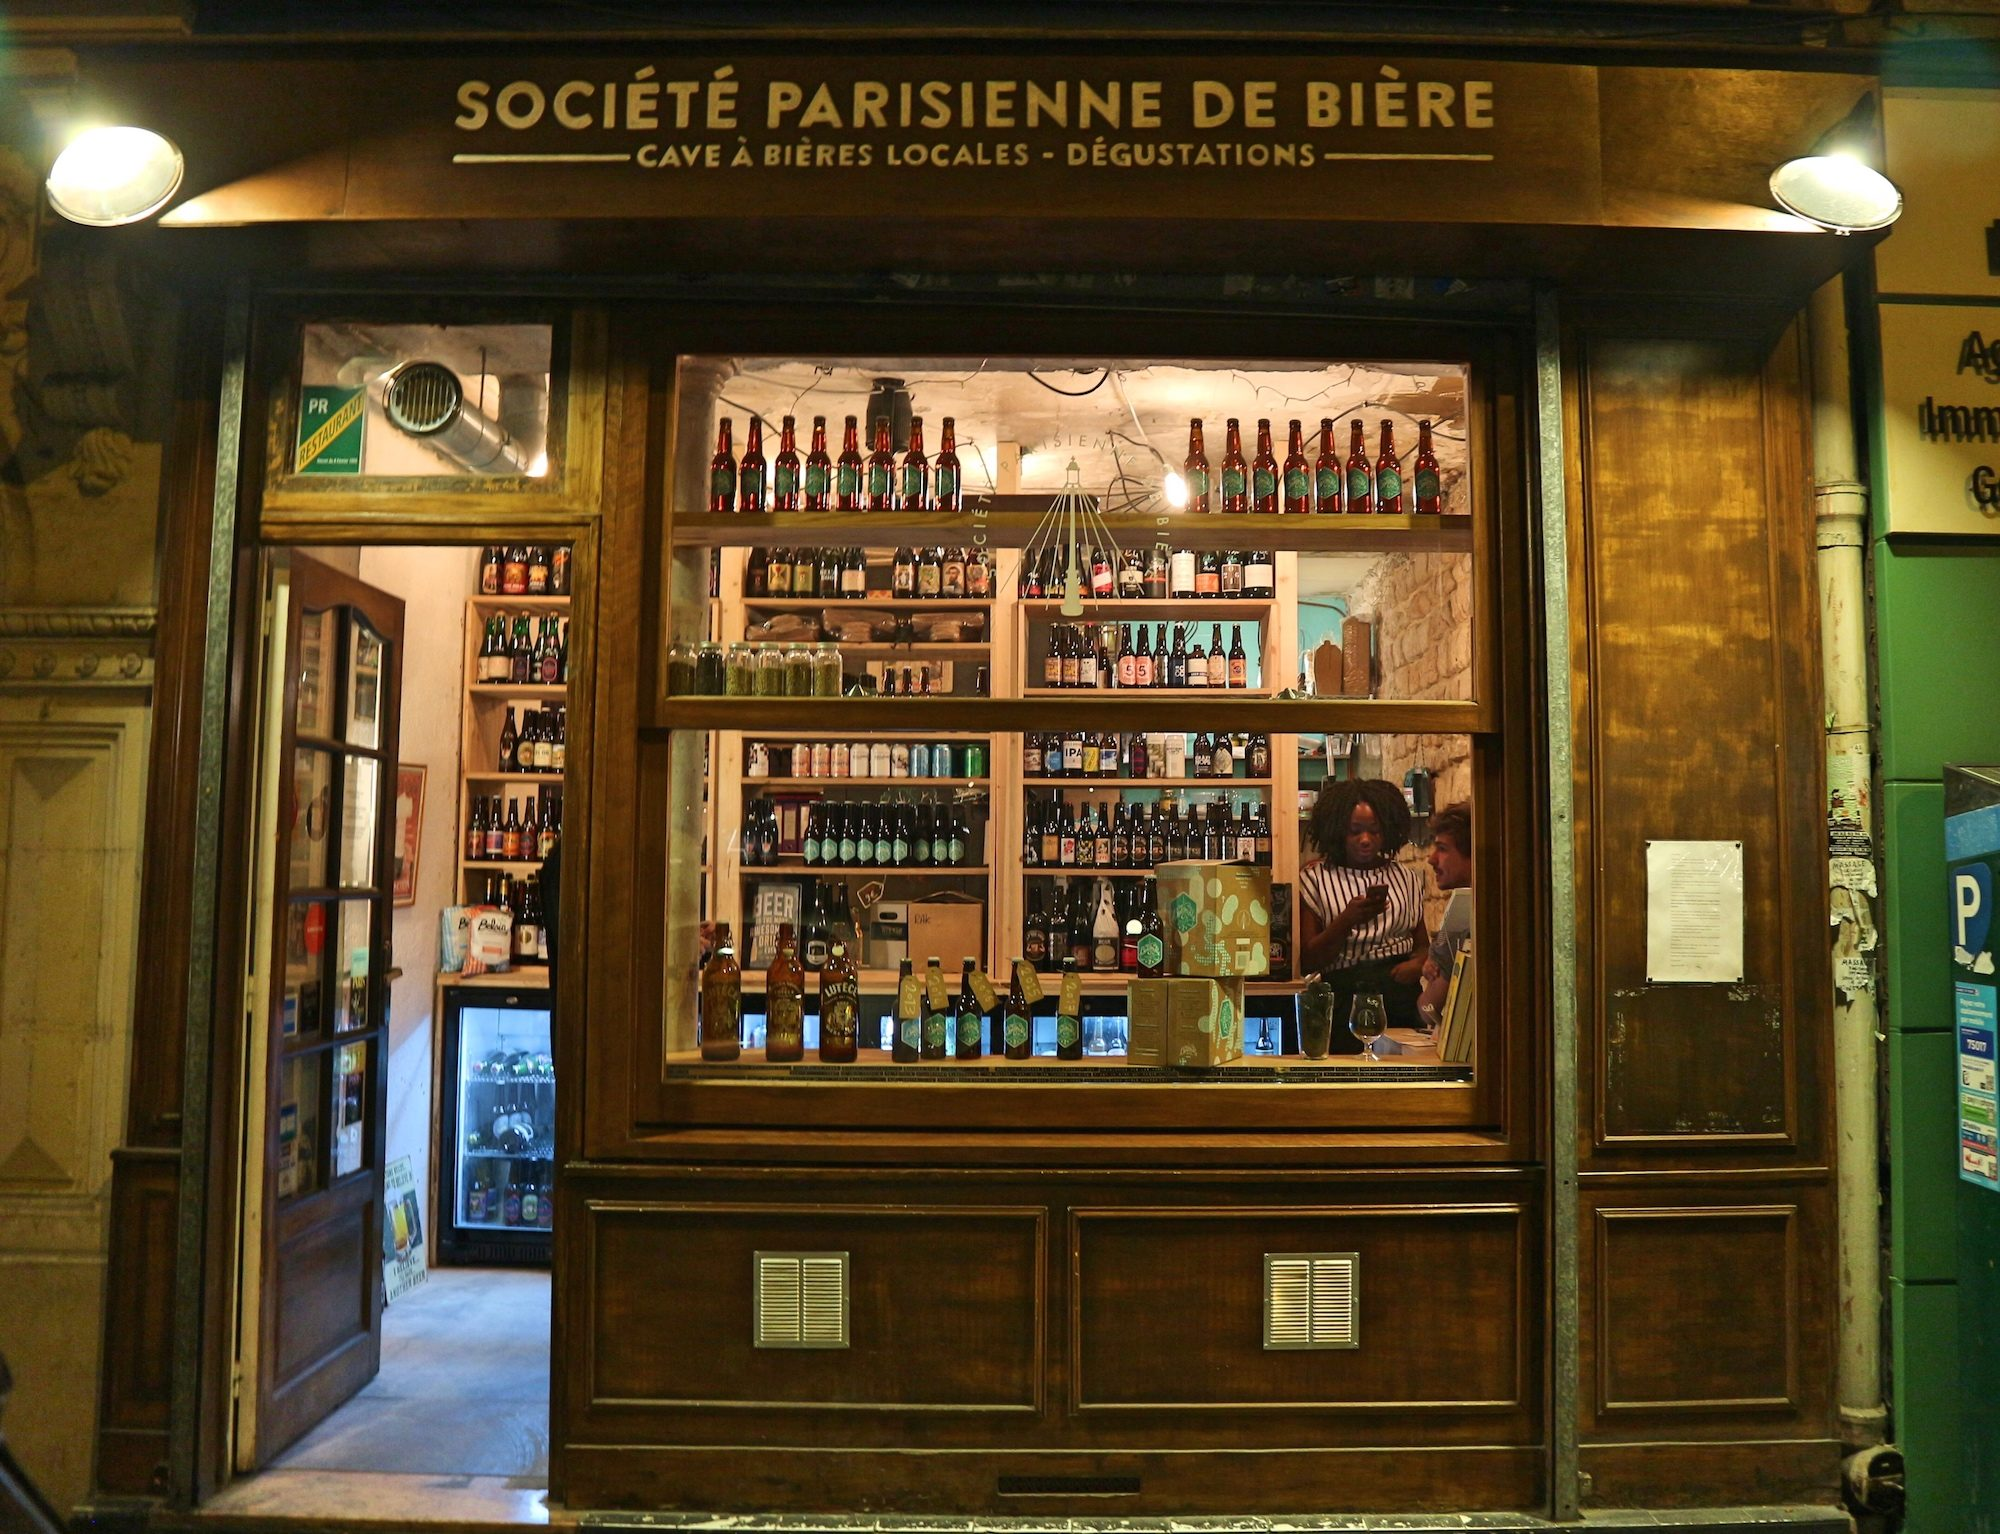 Craft beer shop in Paris, La Société Parisienne de Bière in the Batignolles neighborhood with its artisanal wooden facade.